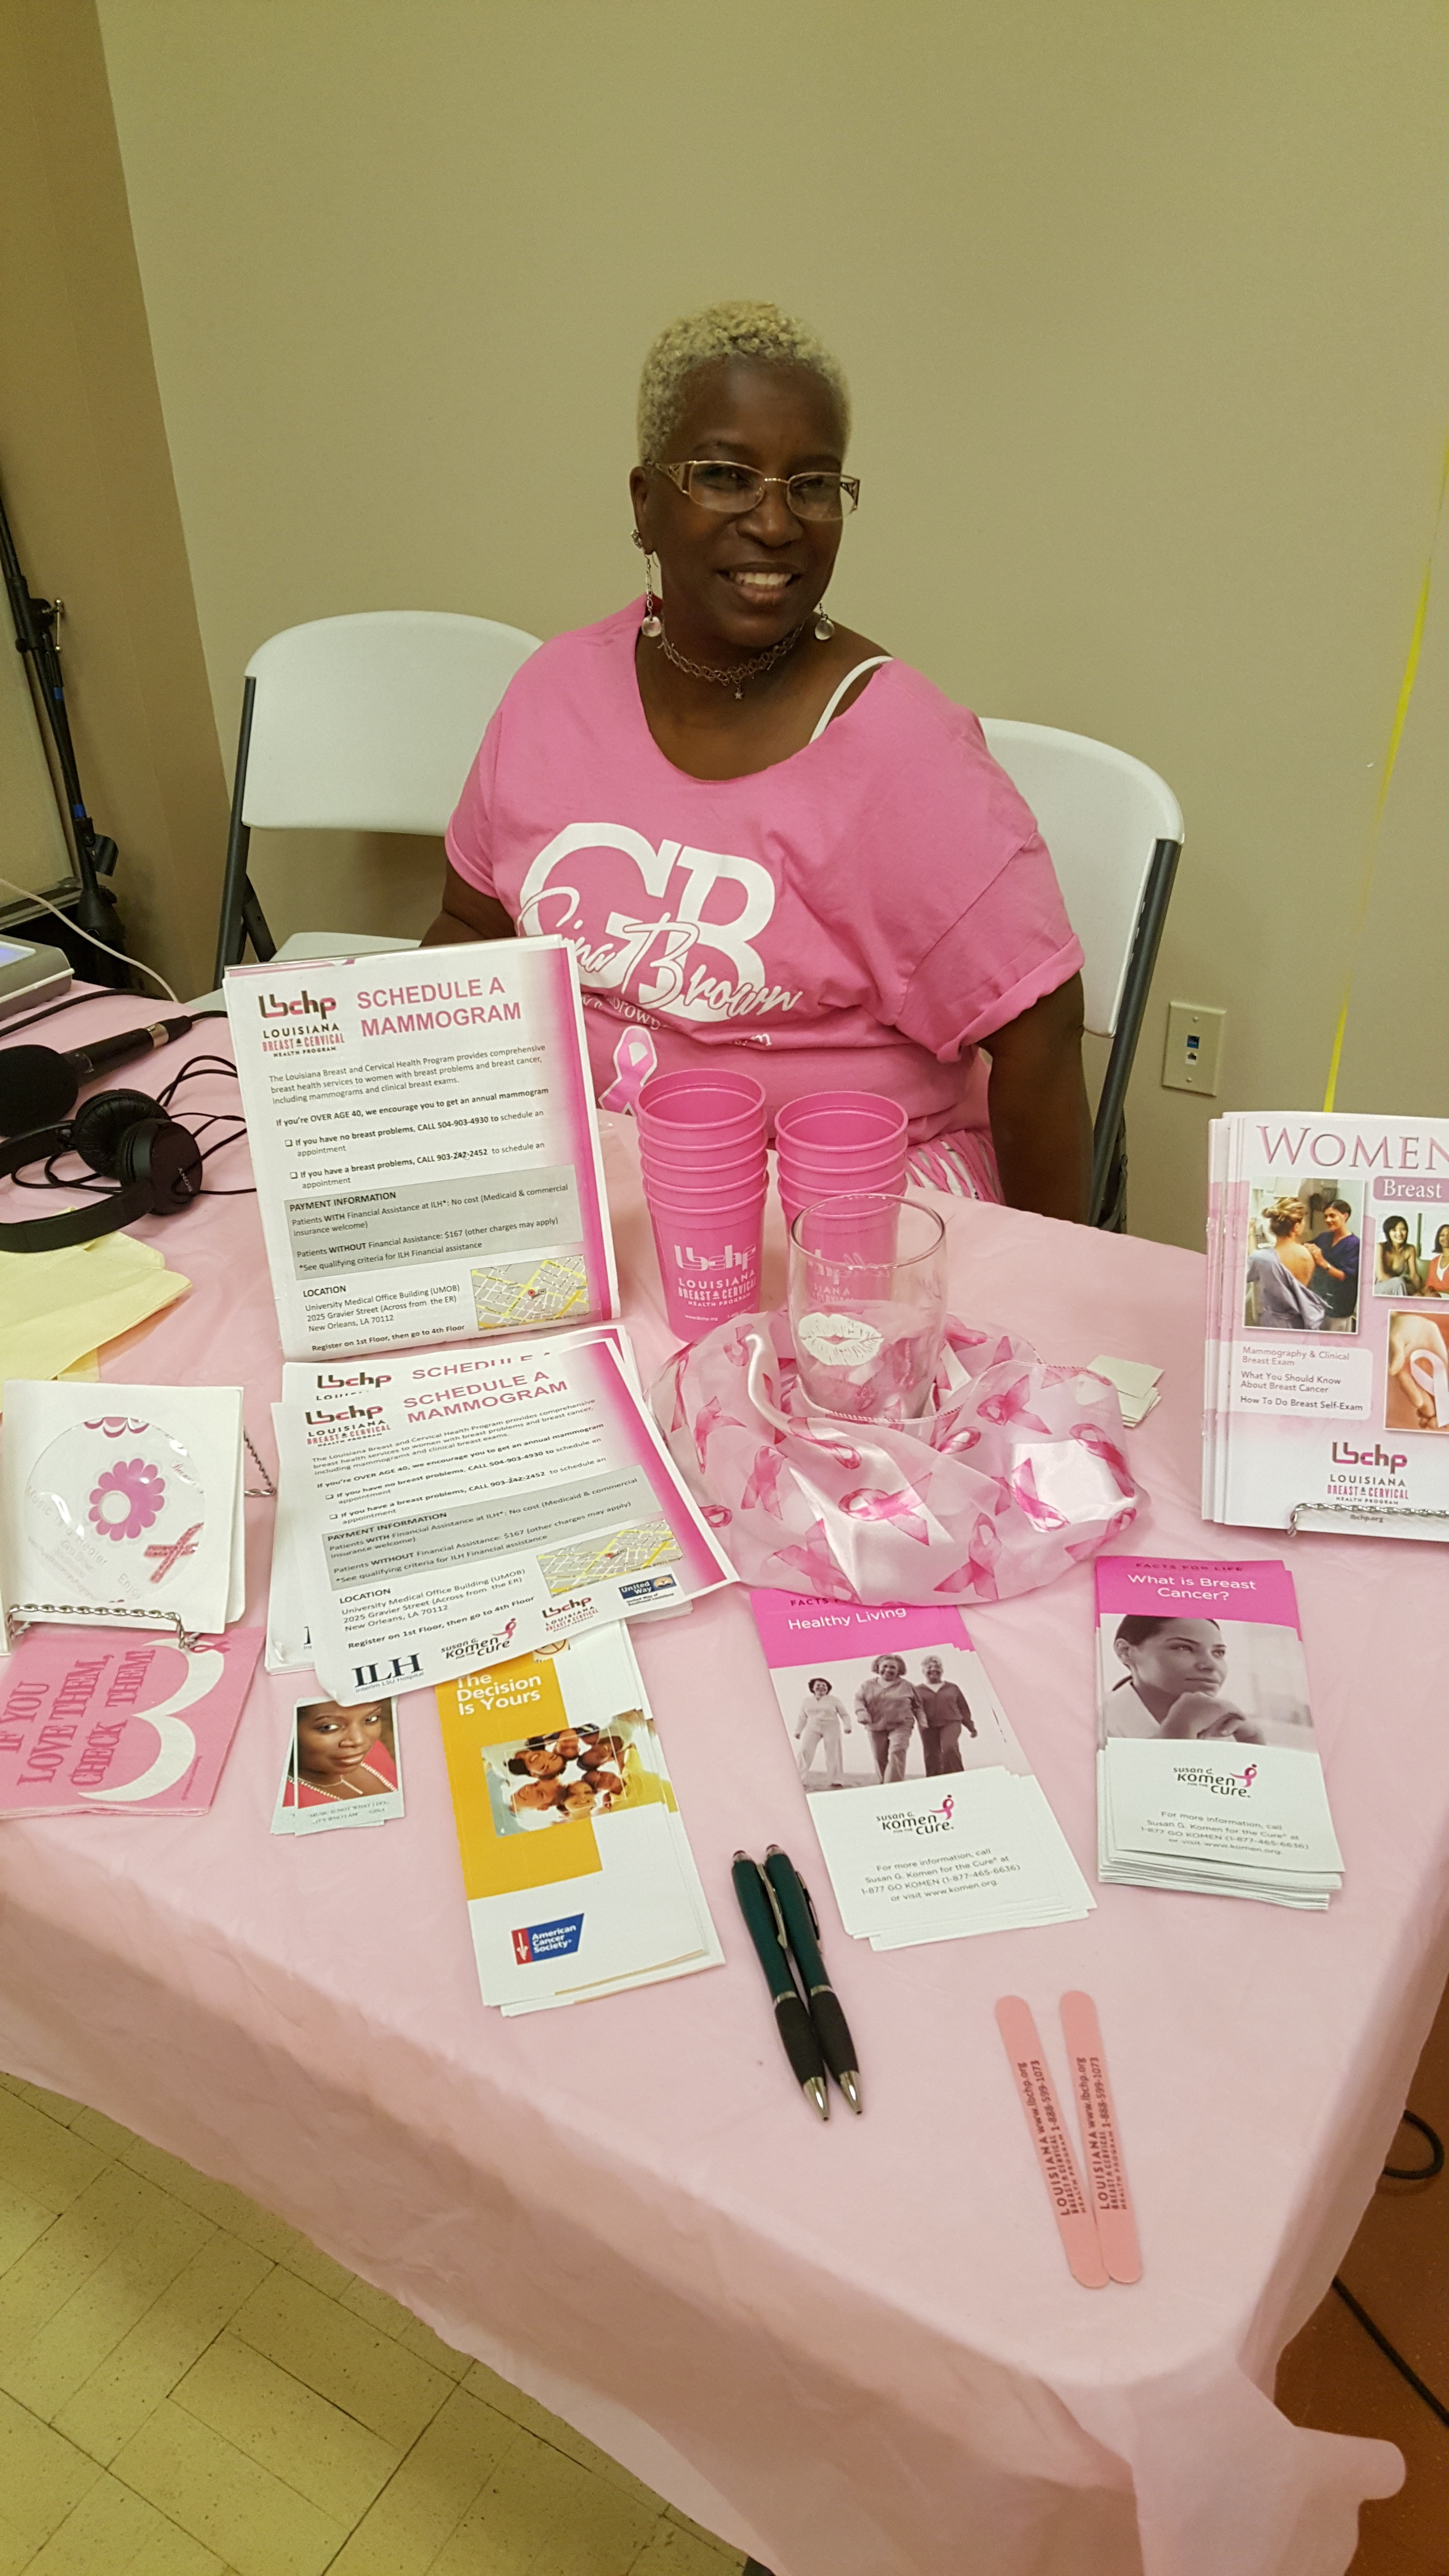 Thank you Gina Brown for sharing these materials with women in Gretna!